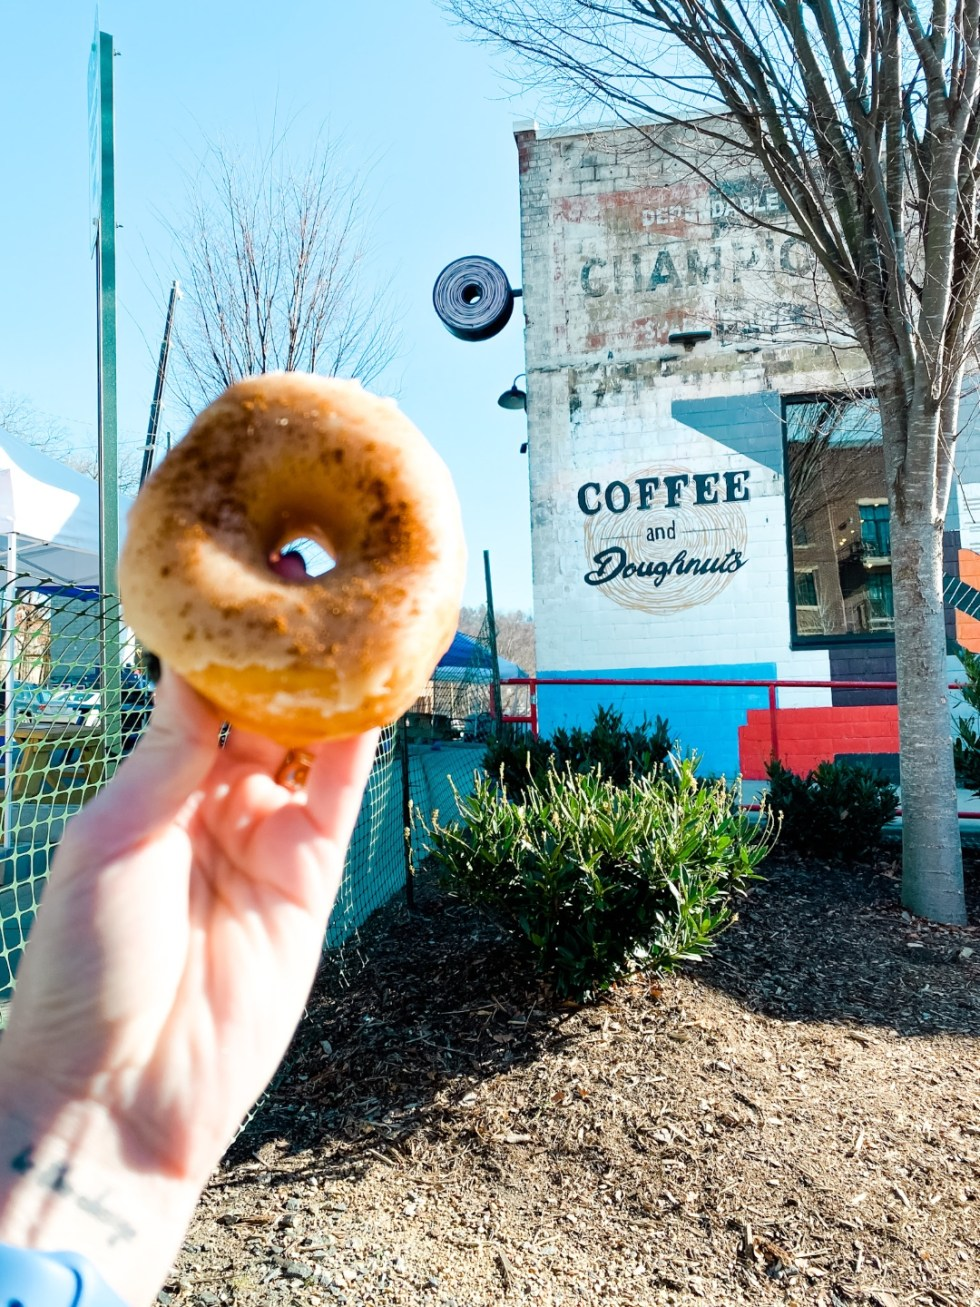 Christmas in Asheville: a Weekend Getaway During the Holidays - I'm Fixin' To - @imfixintoblog |Christmas in Asheville NC by popular NC lifestyle blog, I'm Fixin' To: image of a woman holding a doughnut at Cedric's Tavern.